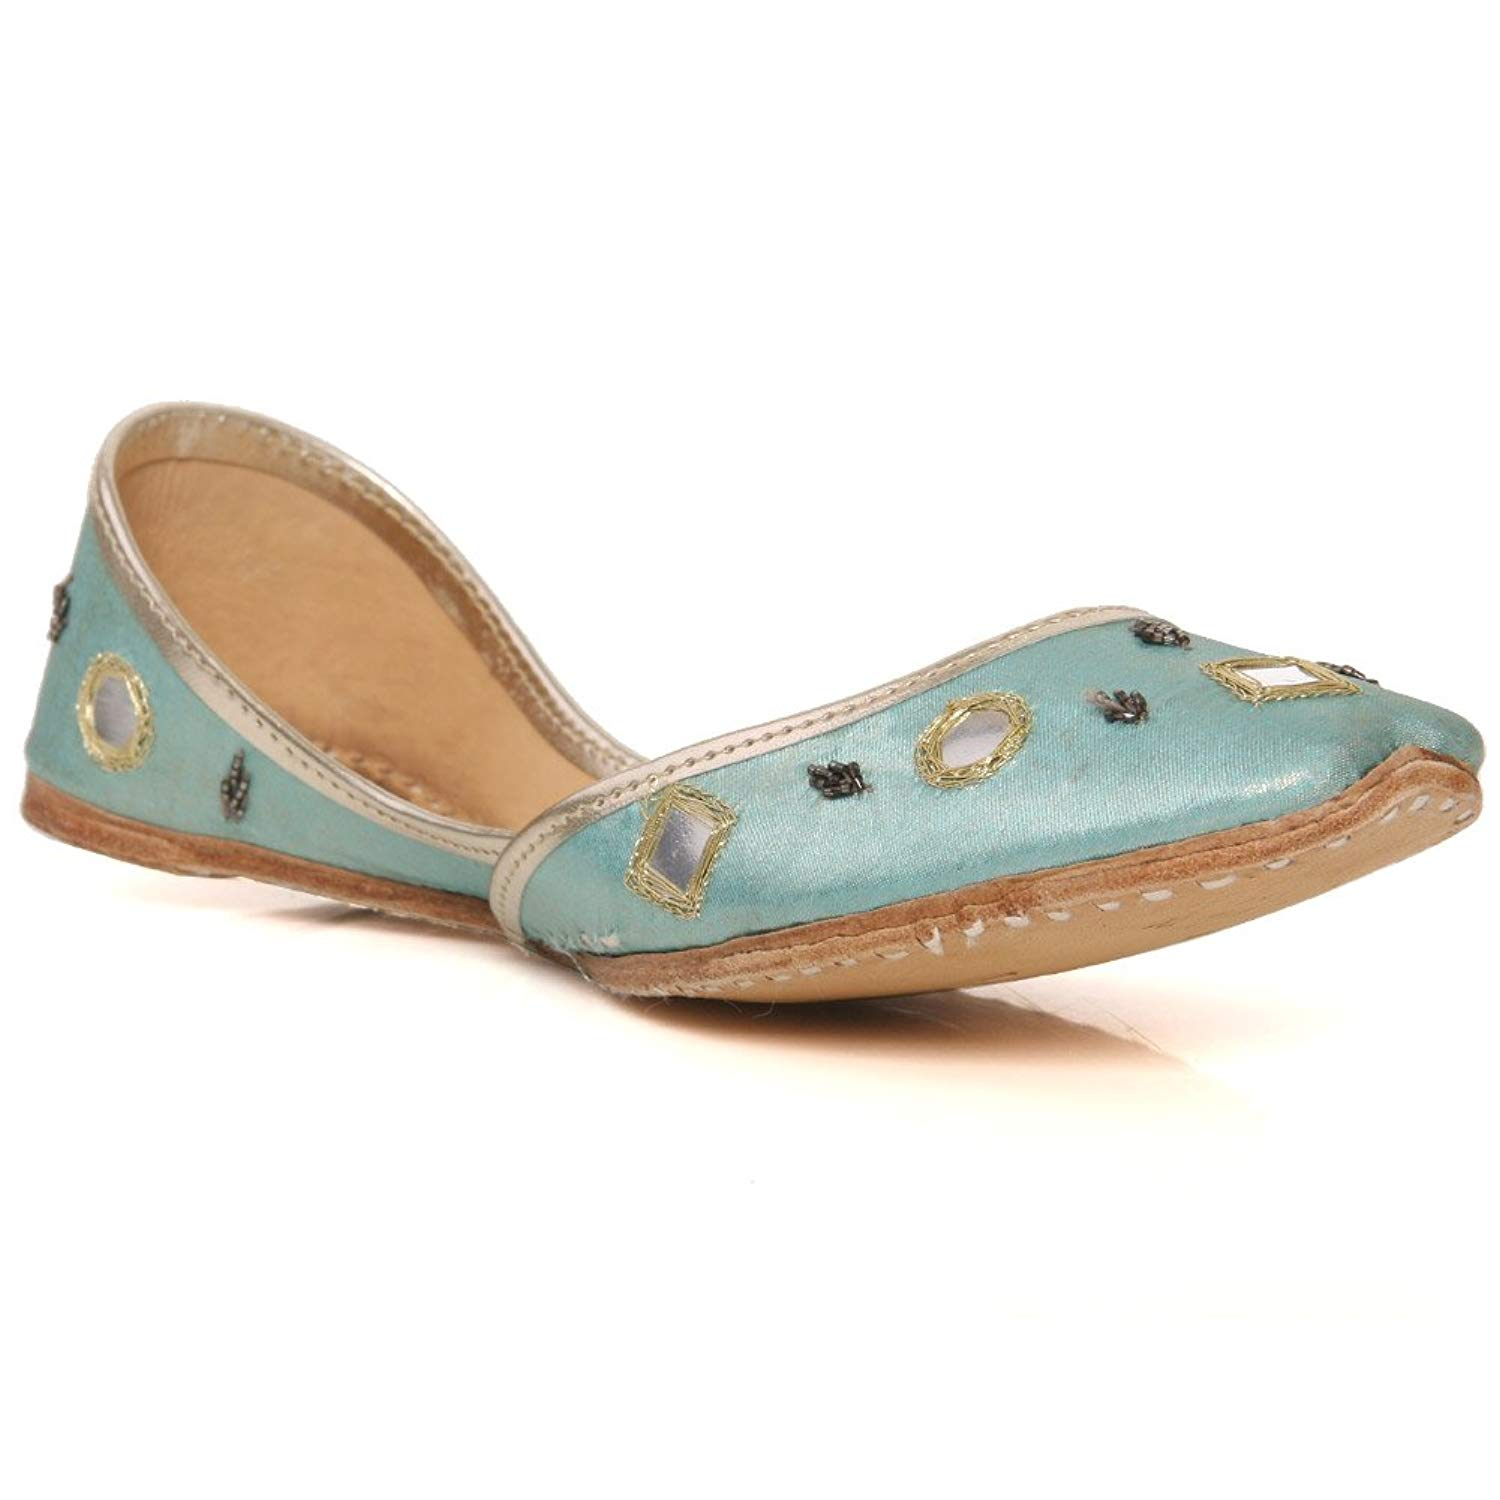 30fcd222cbcefc Get Quotations · Unze New Women Traditional  Cavansite  Handmade Leather  Flat Indian Khussa Pump Slippers Shoes Size